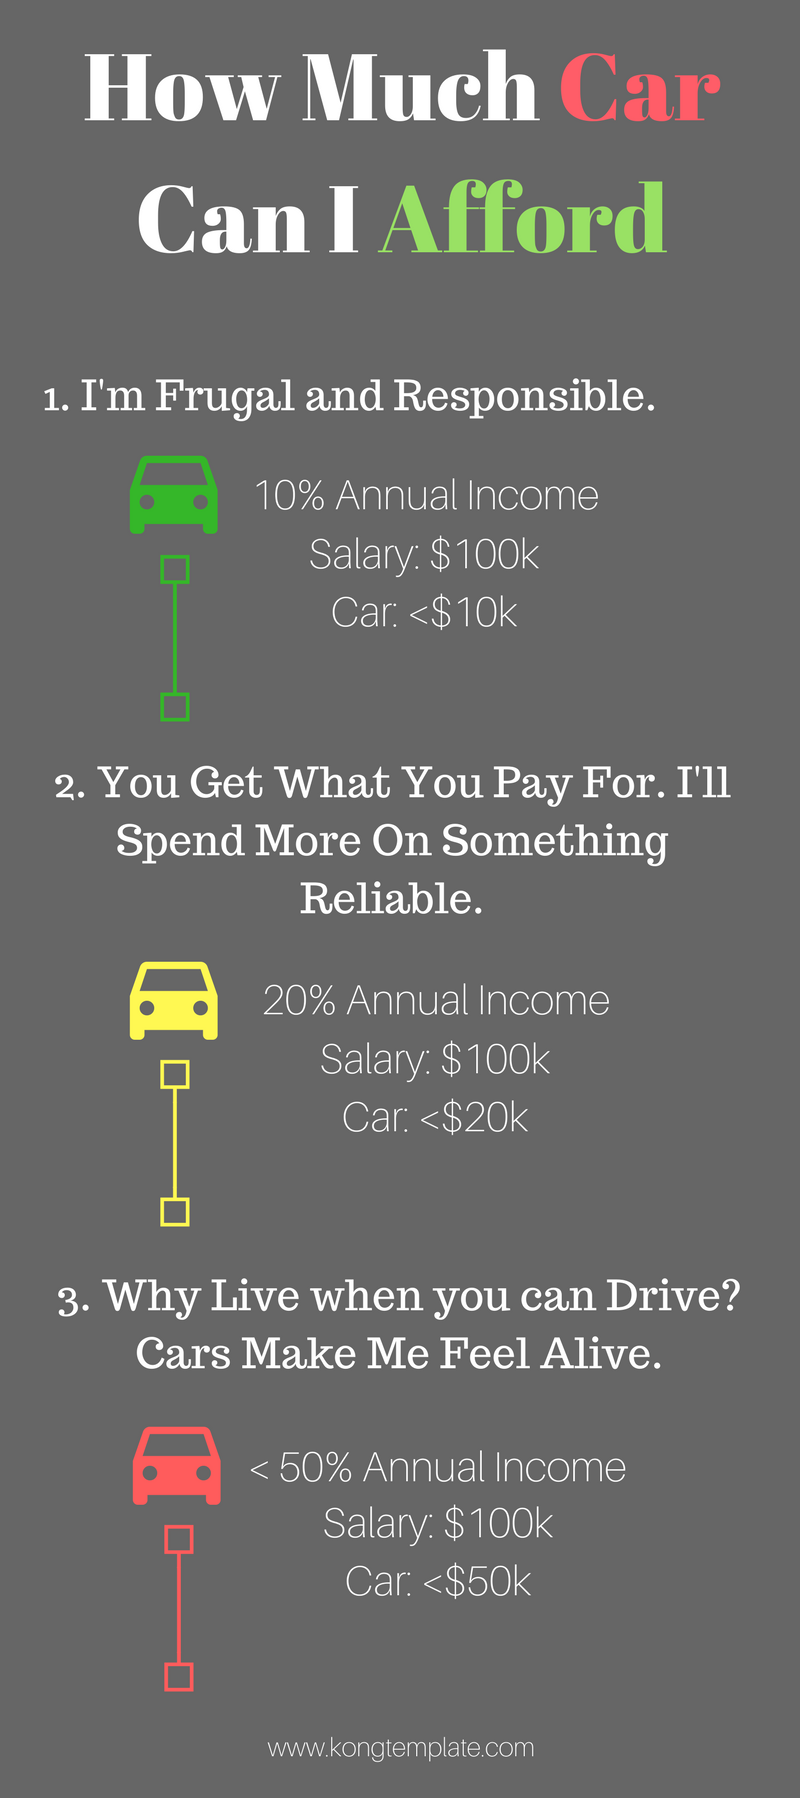 What minimum salary should you have to buy a $100k car? - Quora